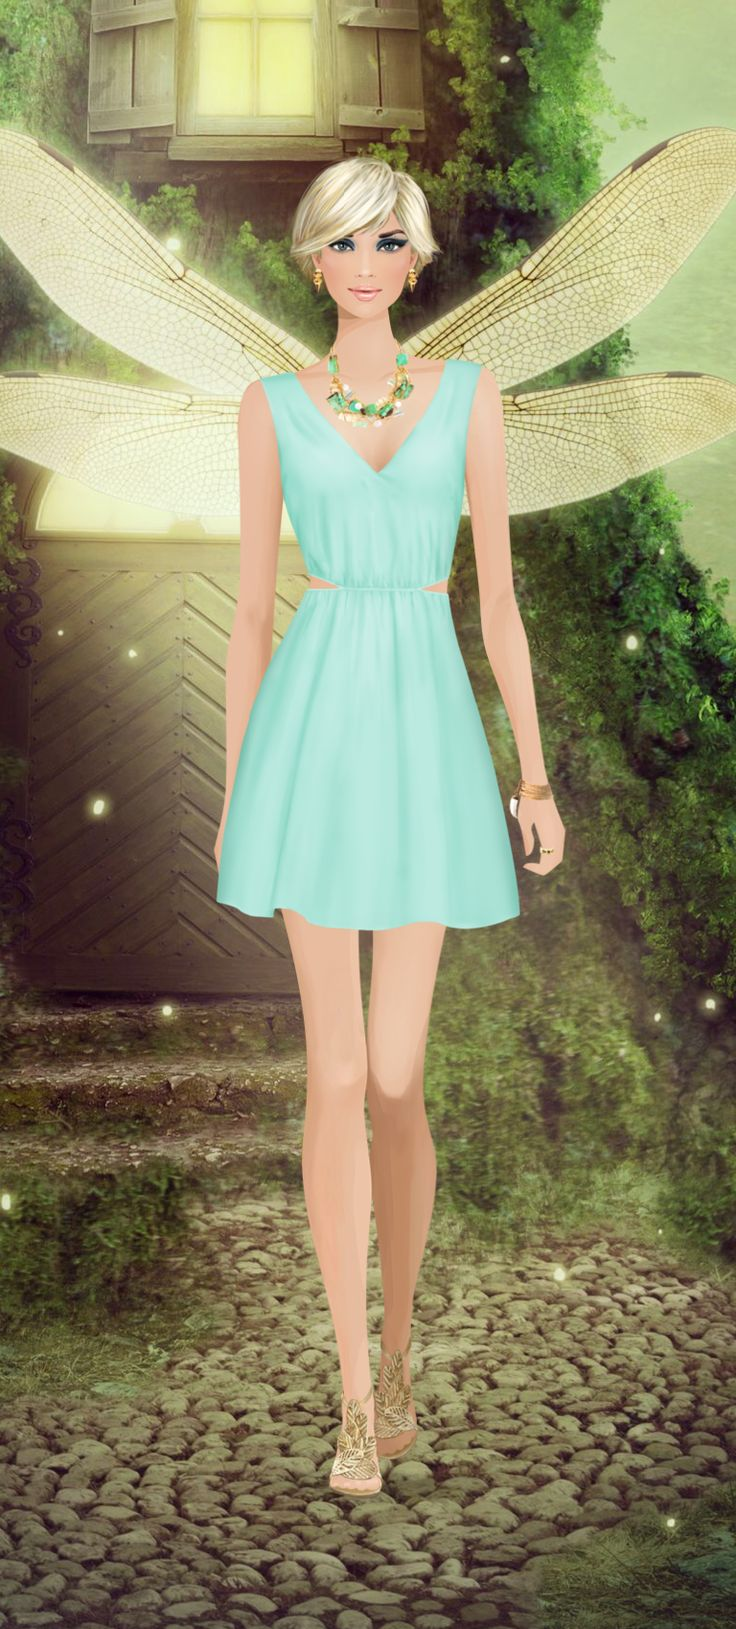 Tinkerbell Event On Covet Fashion Game Covet Fashion Game Pinterest Covet Fashion Fashion